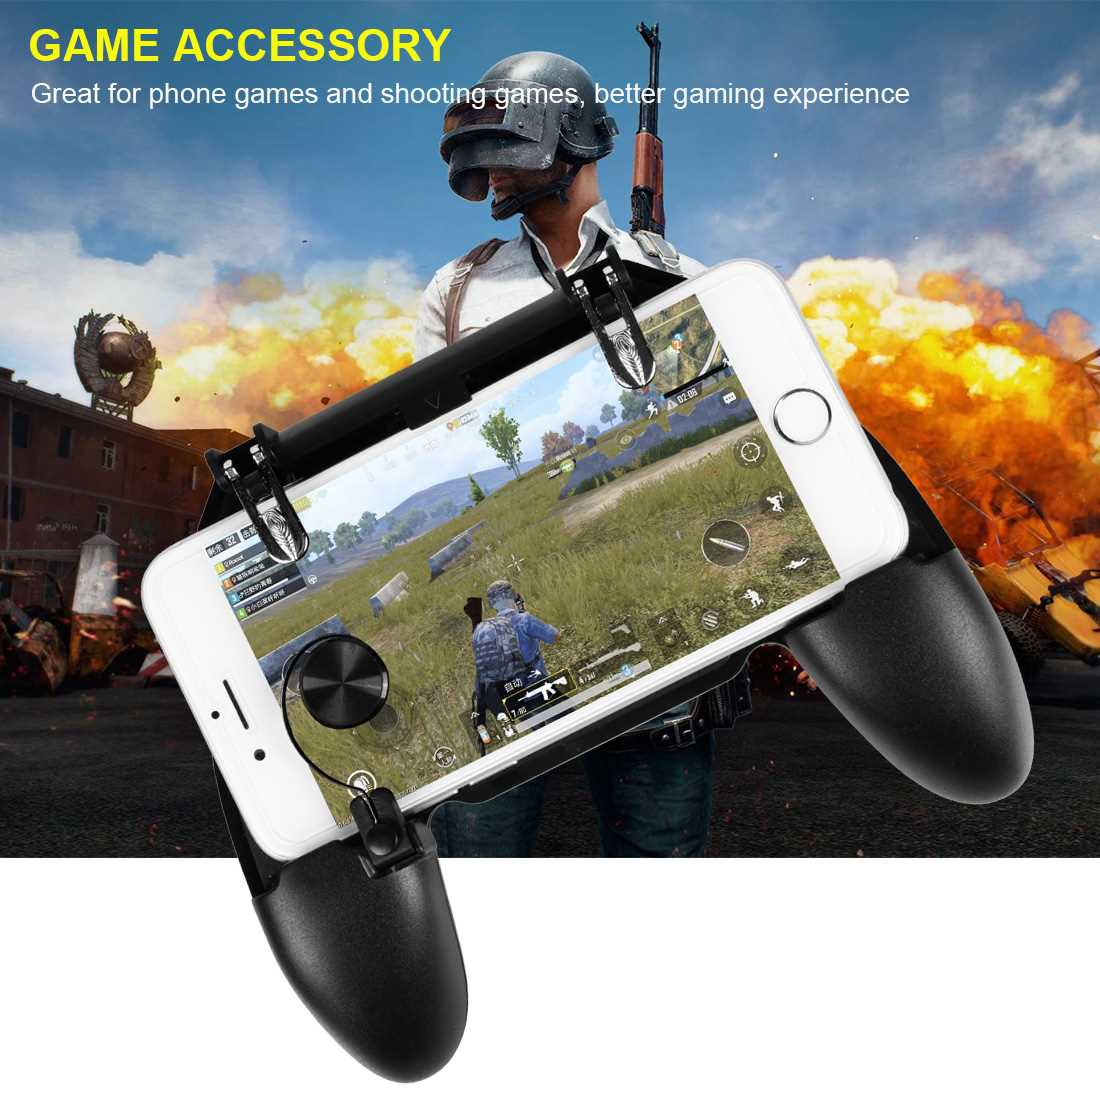 Eat chicken artifacts Jedi survival six-finger linkage button assist gamepad W11+ (Standard)